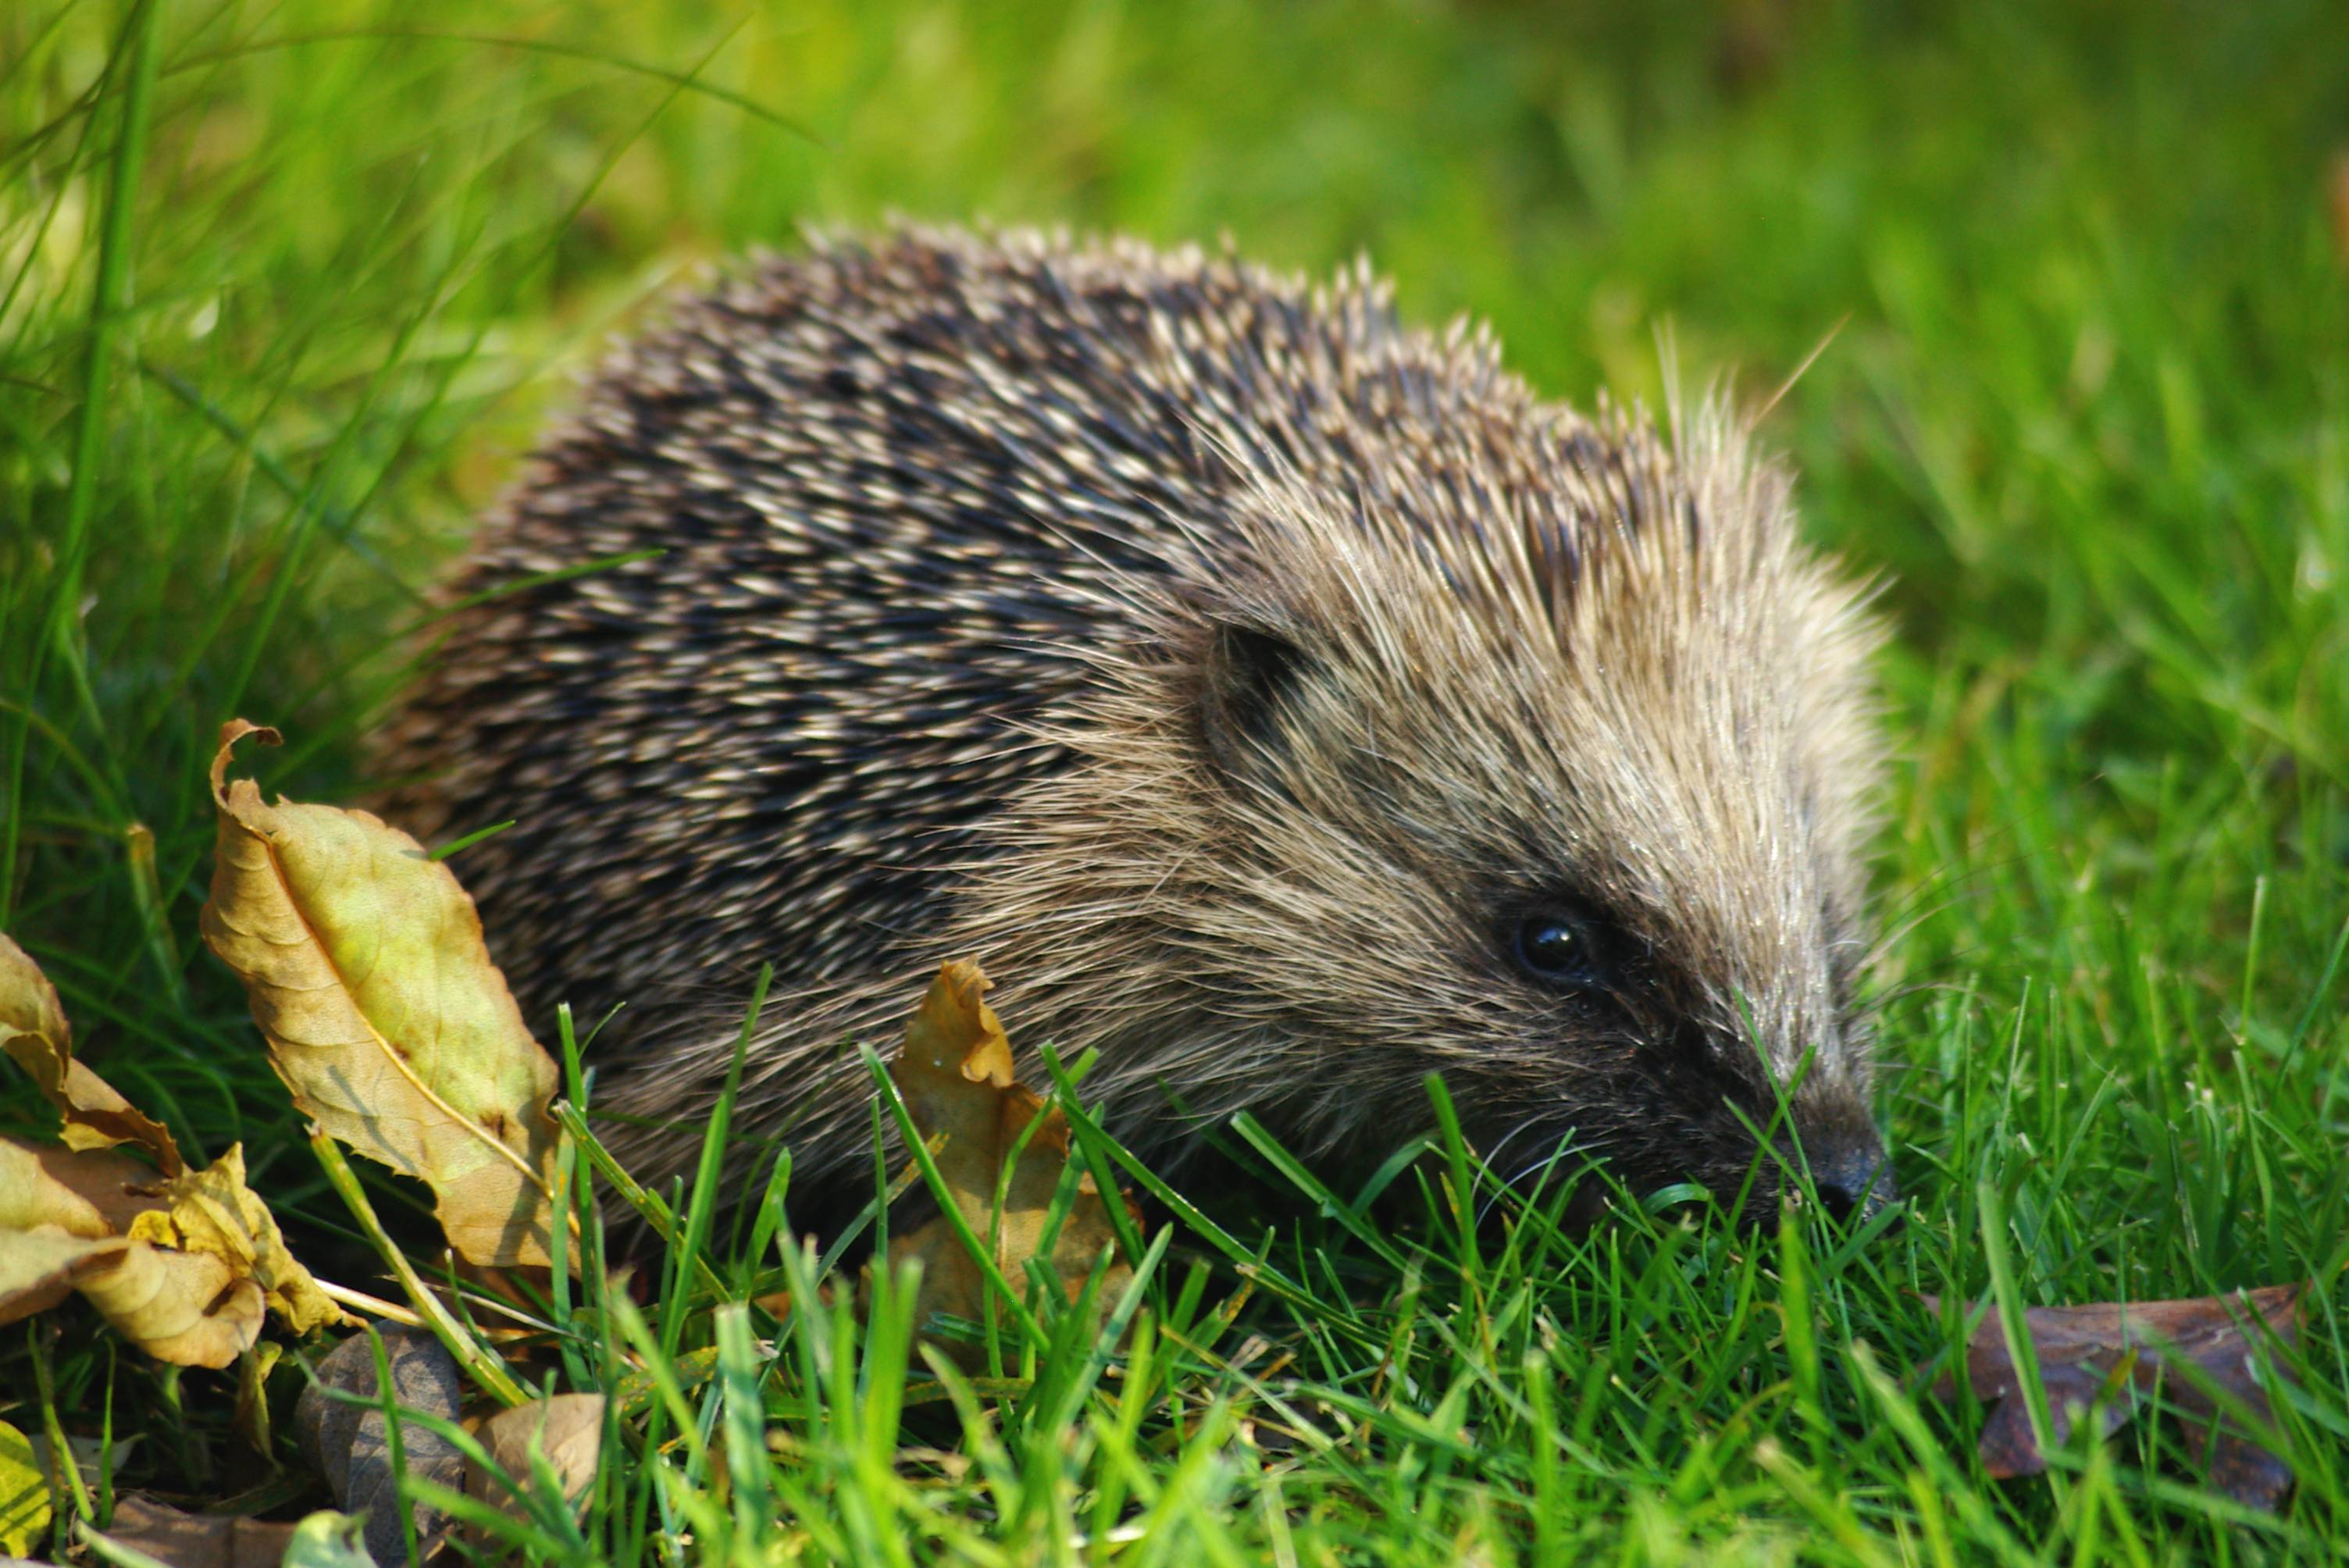 Hedgehog Photo by Gillian Day